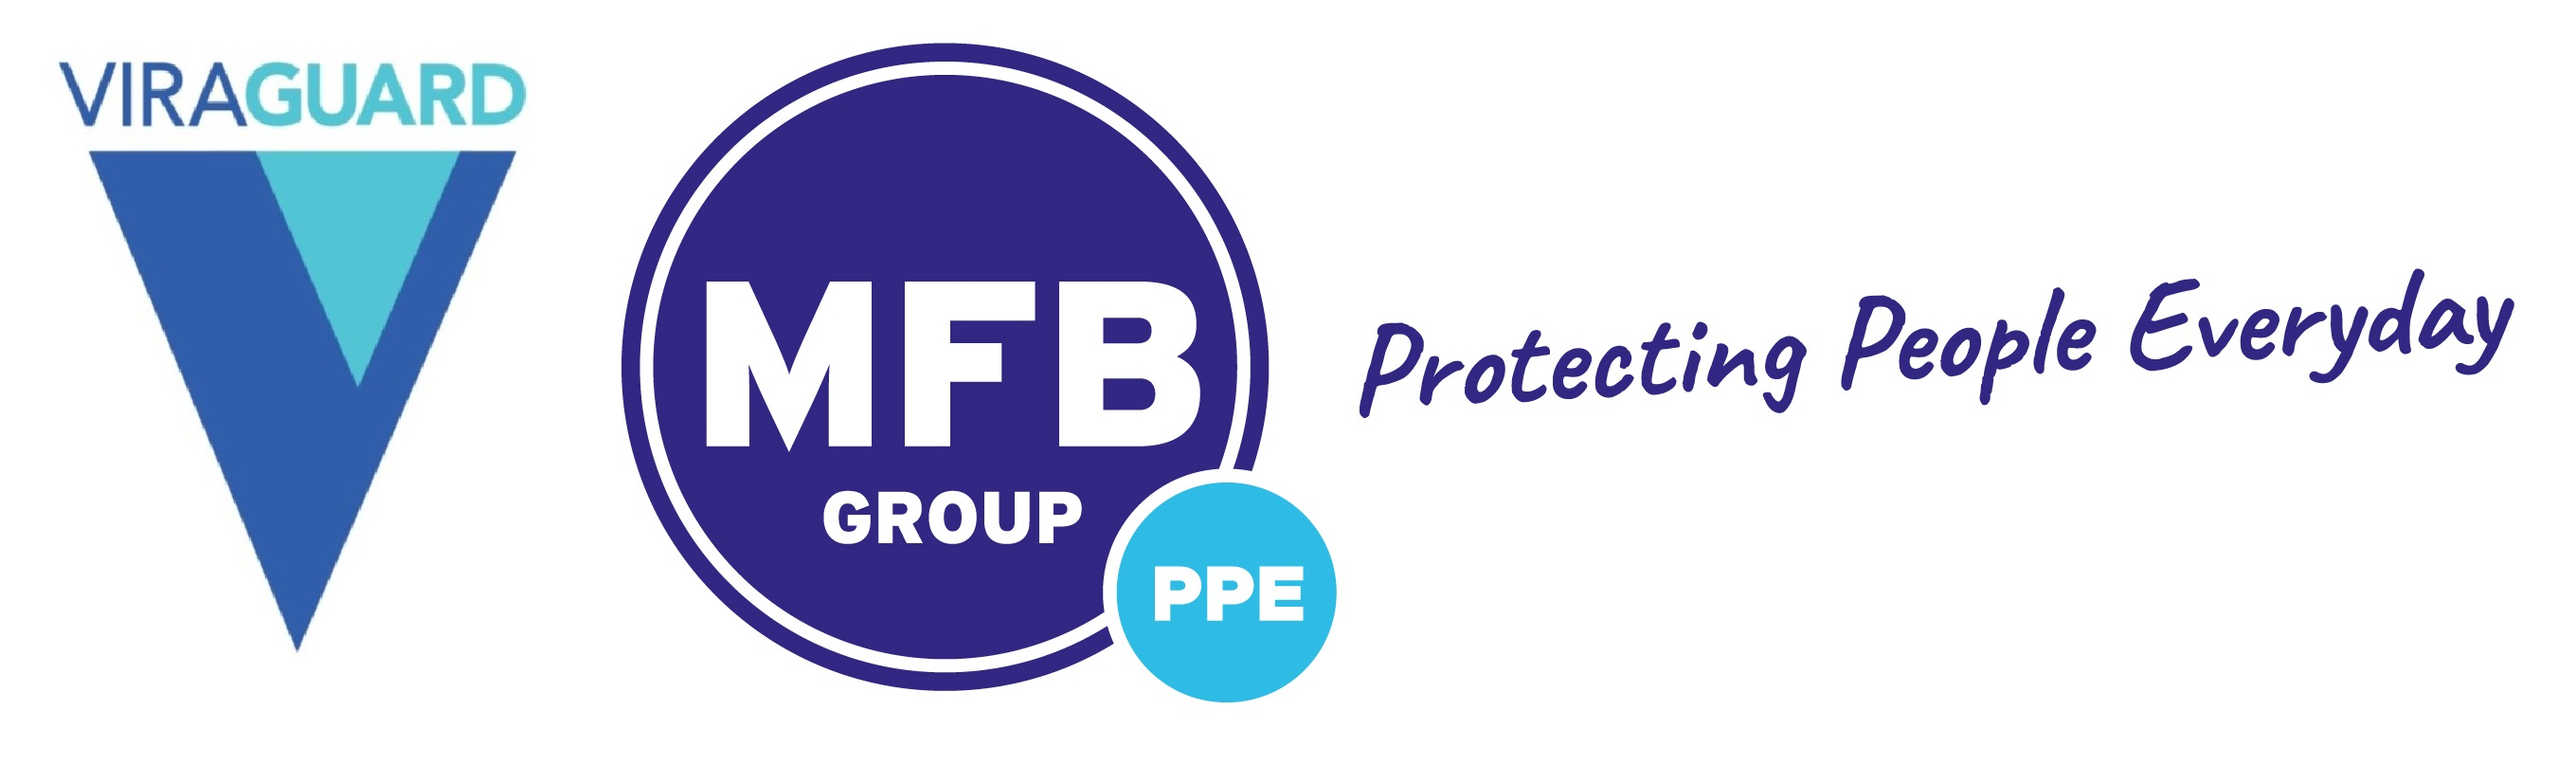 MFB Group PPE logo